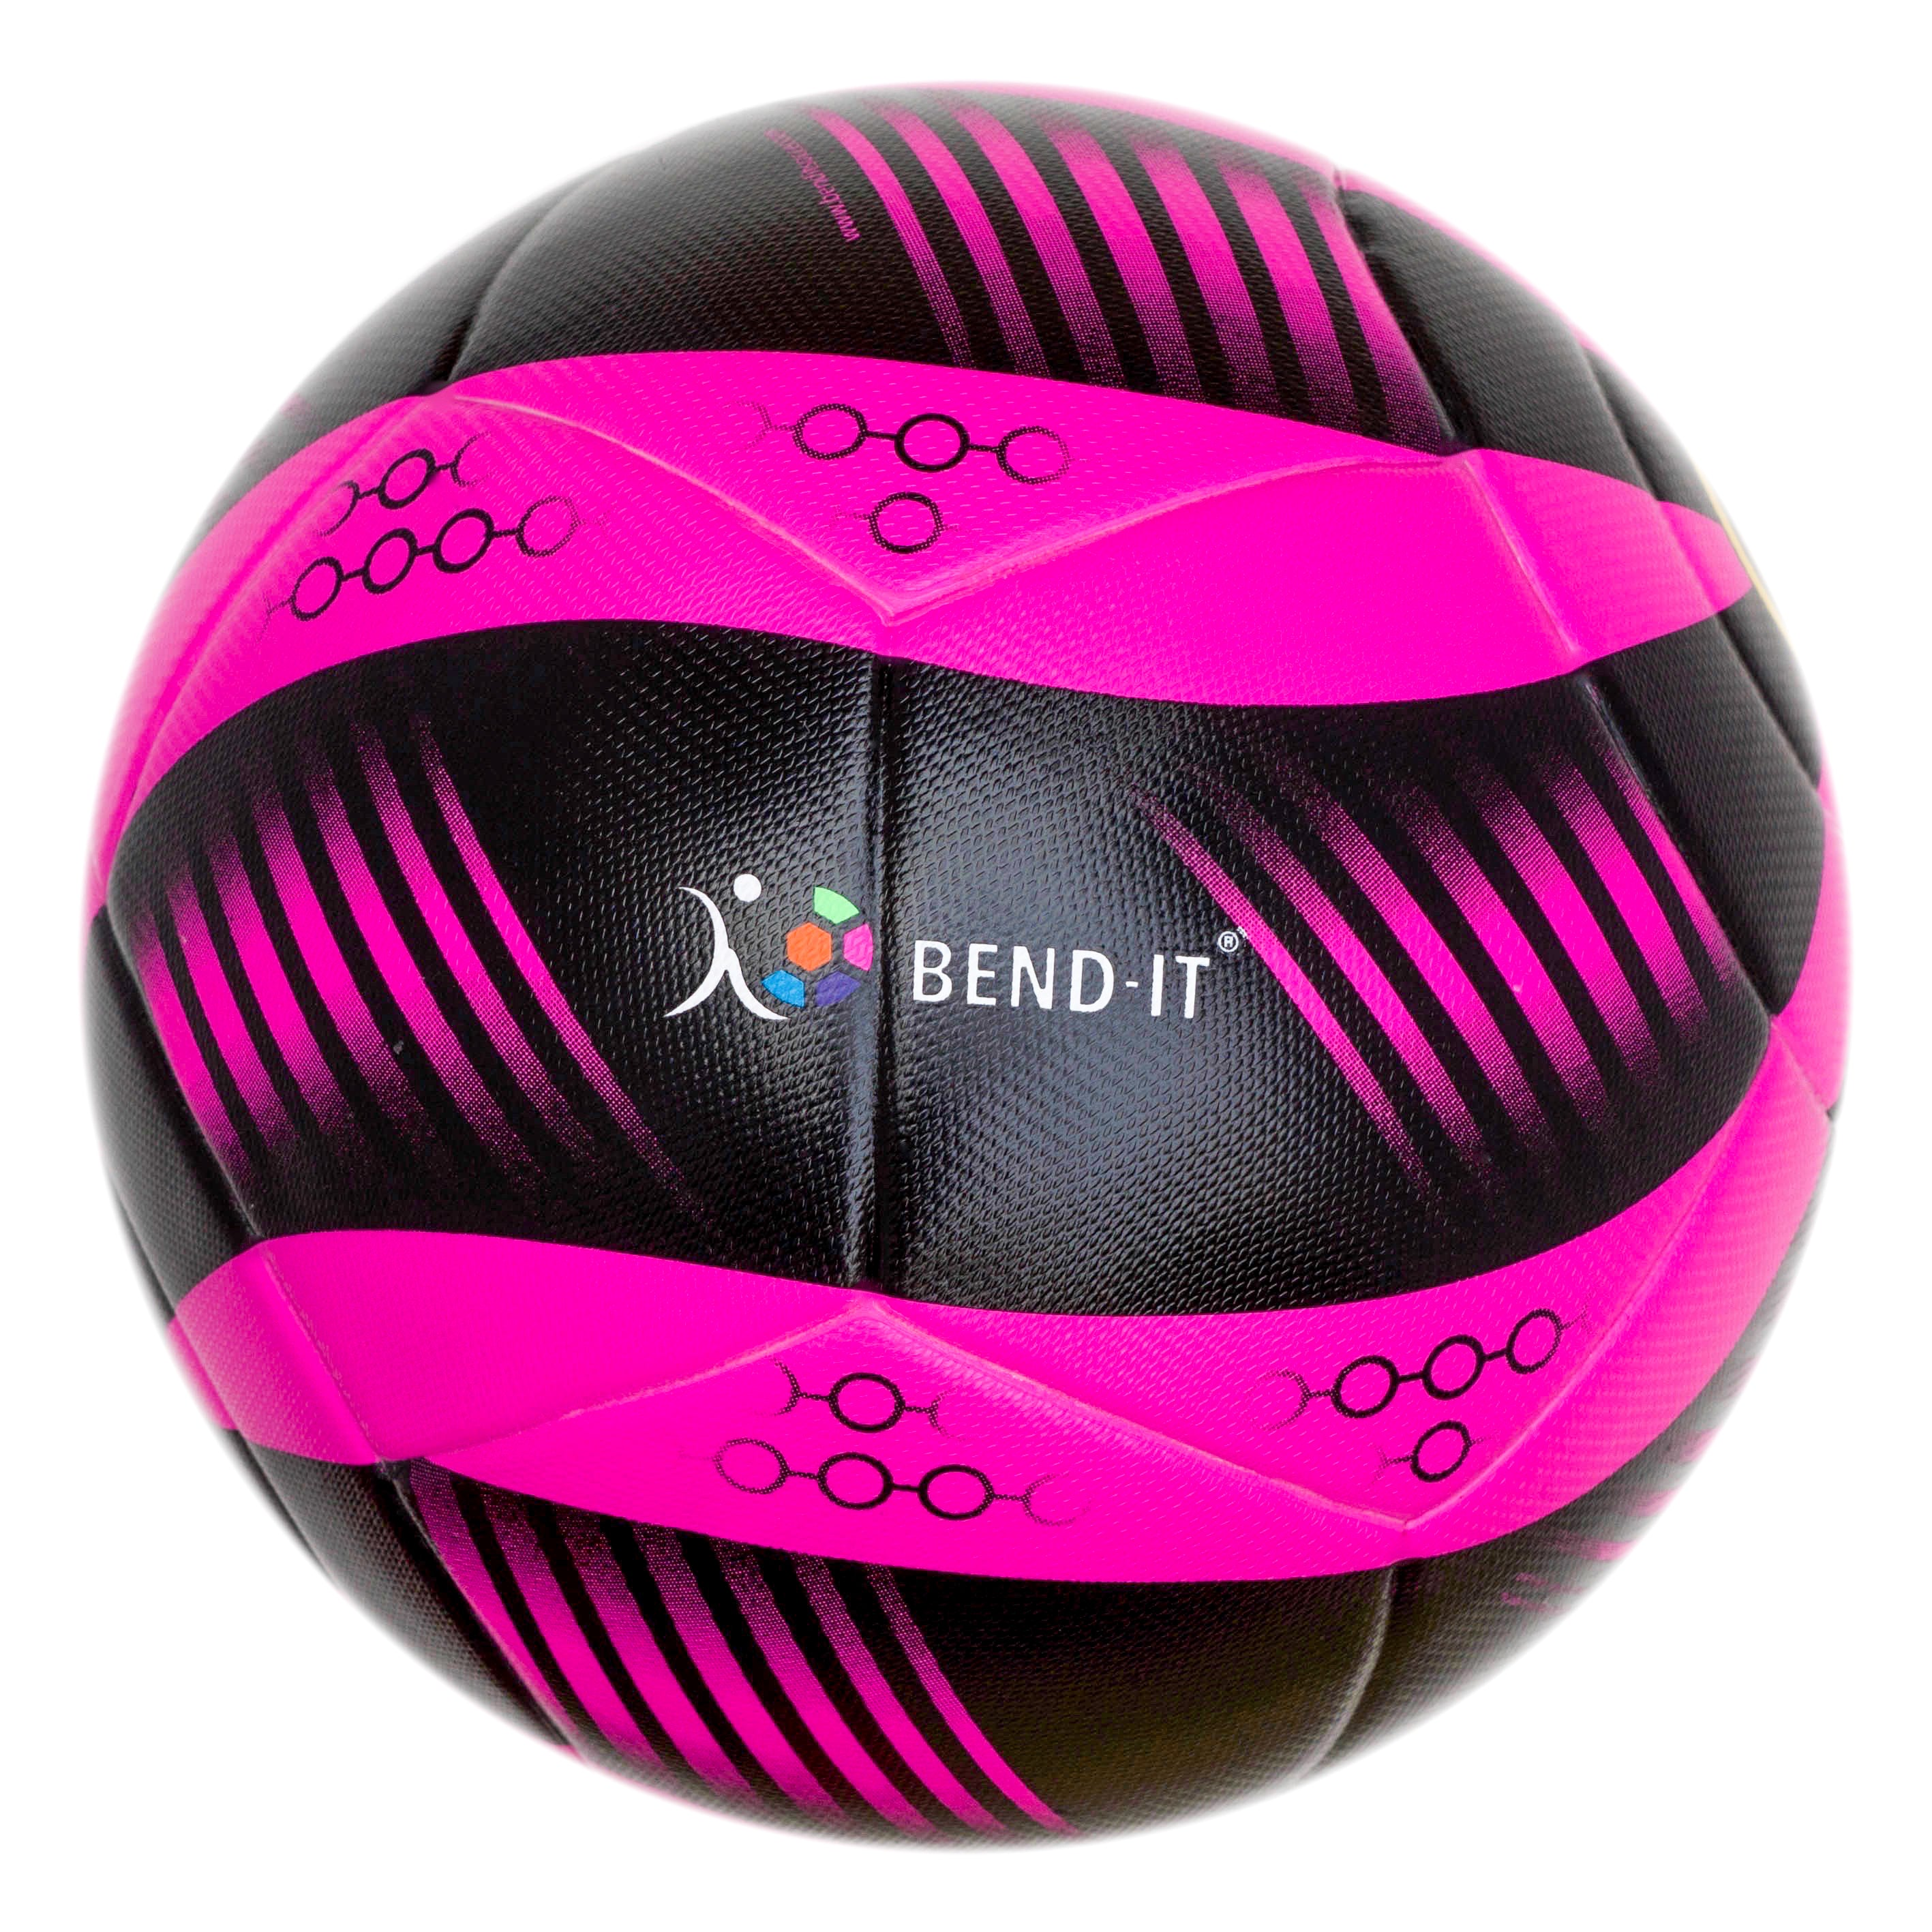 b528b461f10 Bend-It Soccer, Curl-It Pro Atomic, Soccer Ball Size 5, Match Ball ...